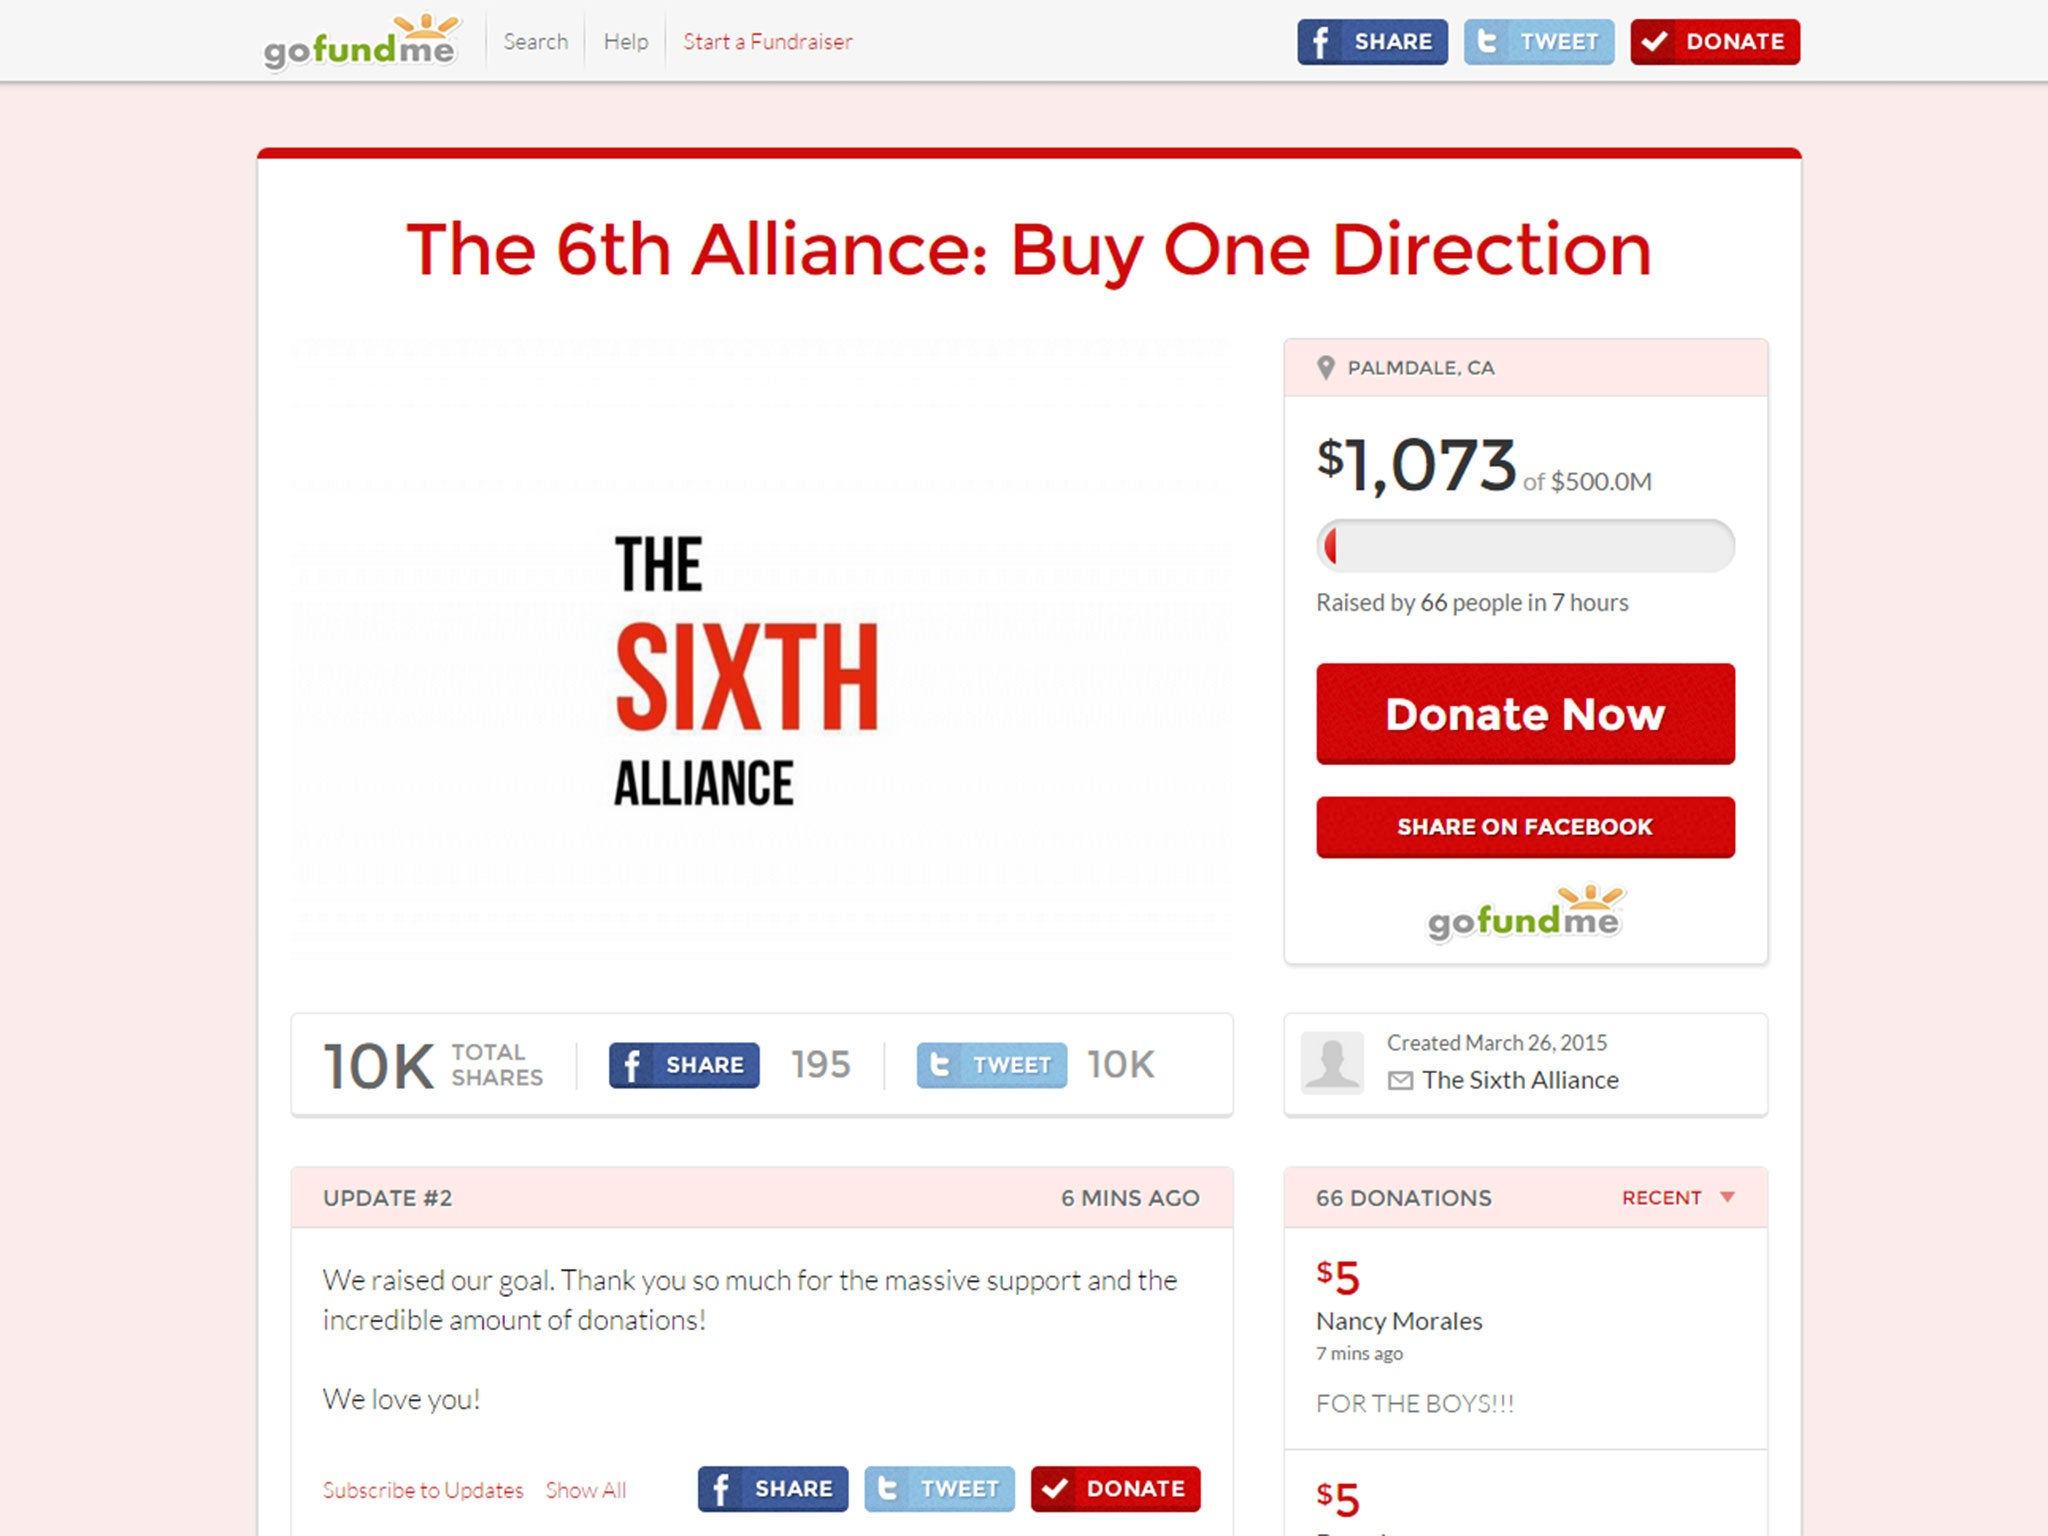 One Direction fans campaign to buy the band after Zayn Malik